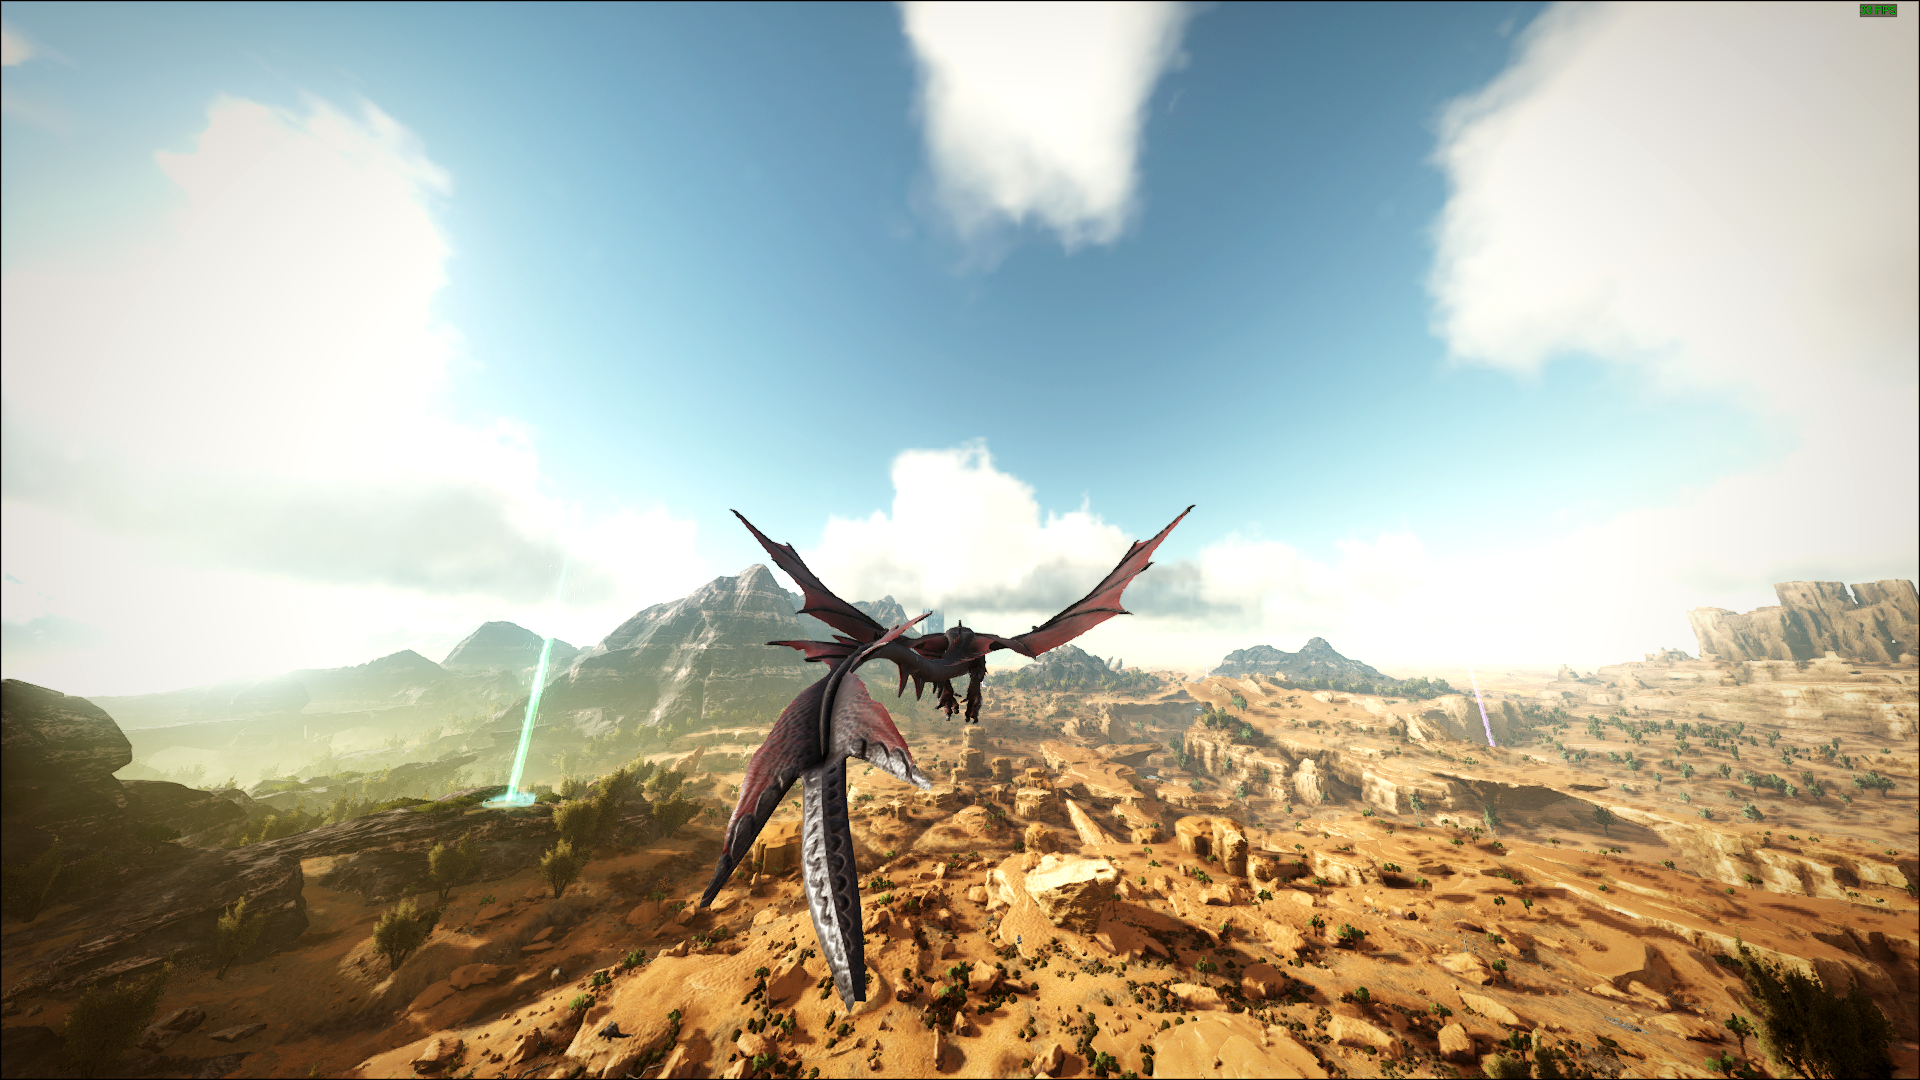 Wyvern scorched earth wiki ark survival evolved forum und folgende malvernweather Image collections